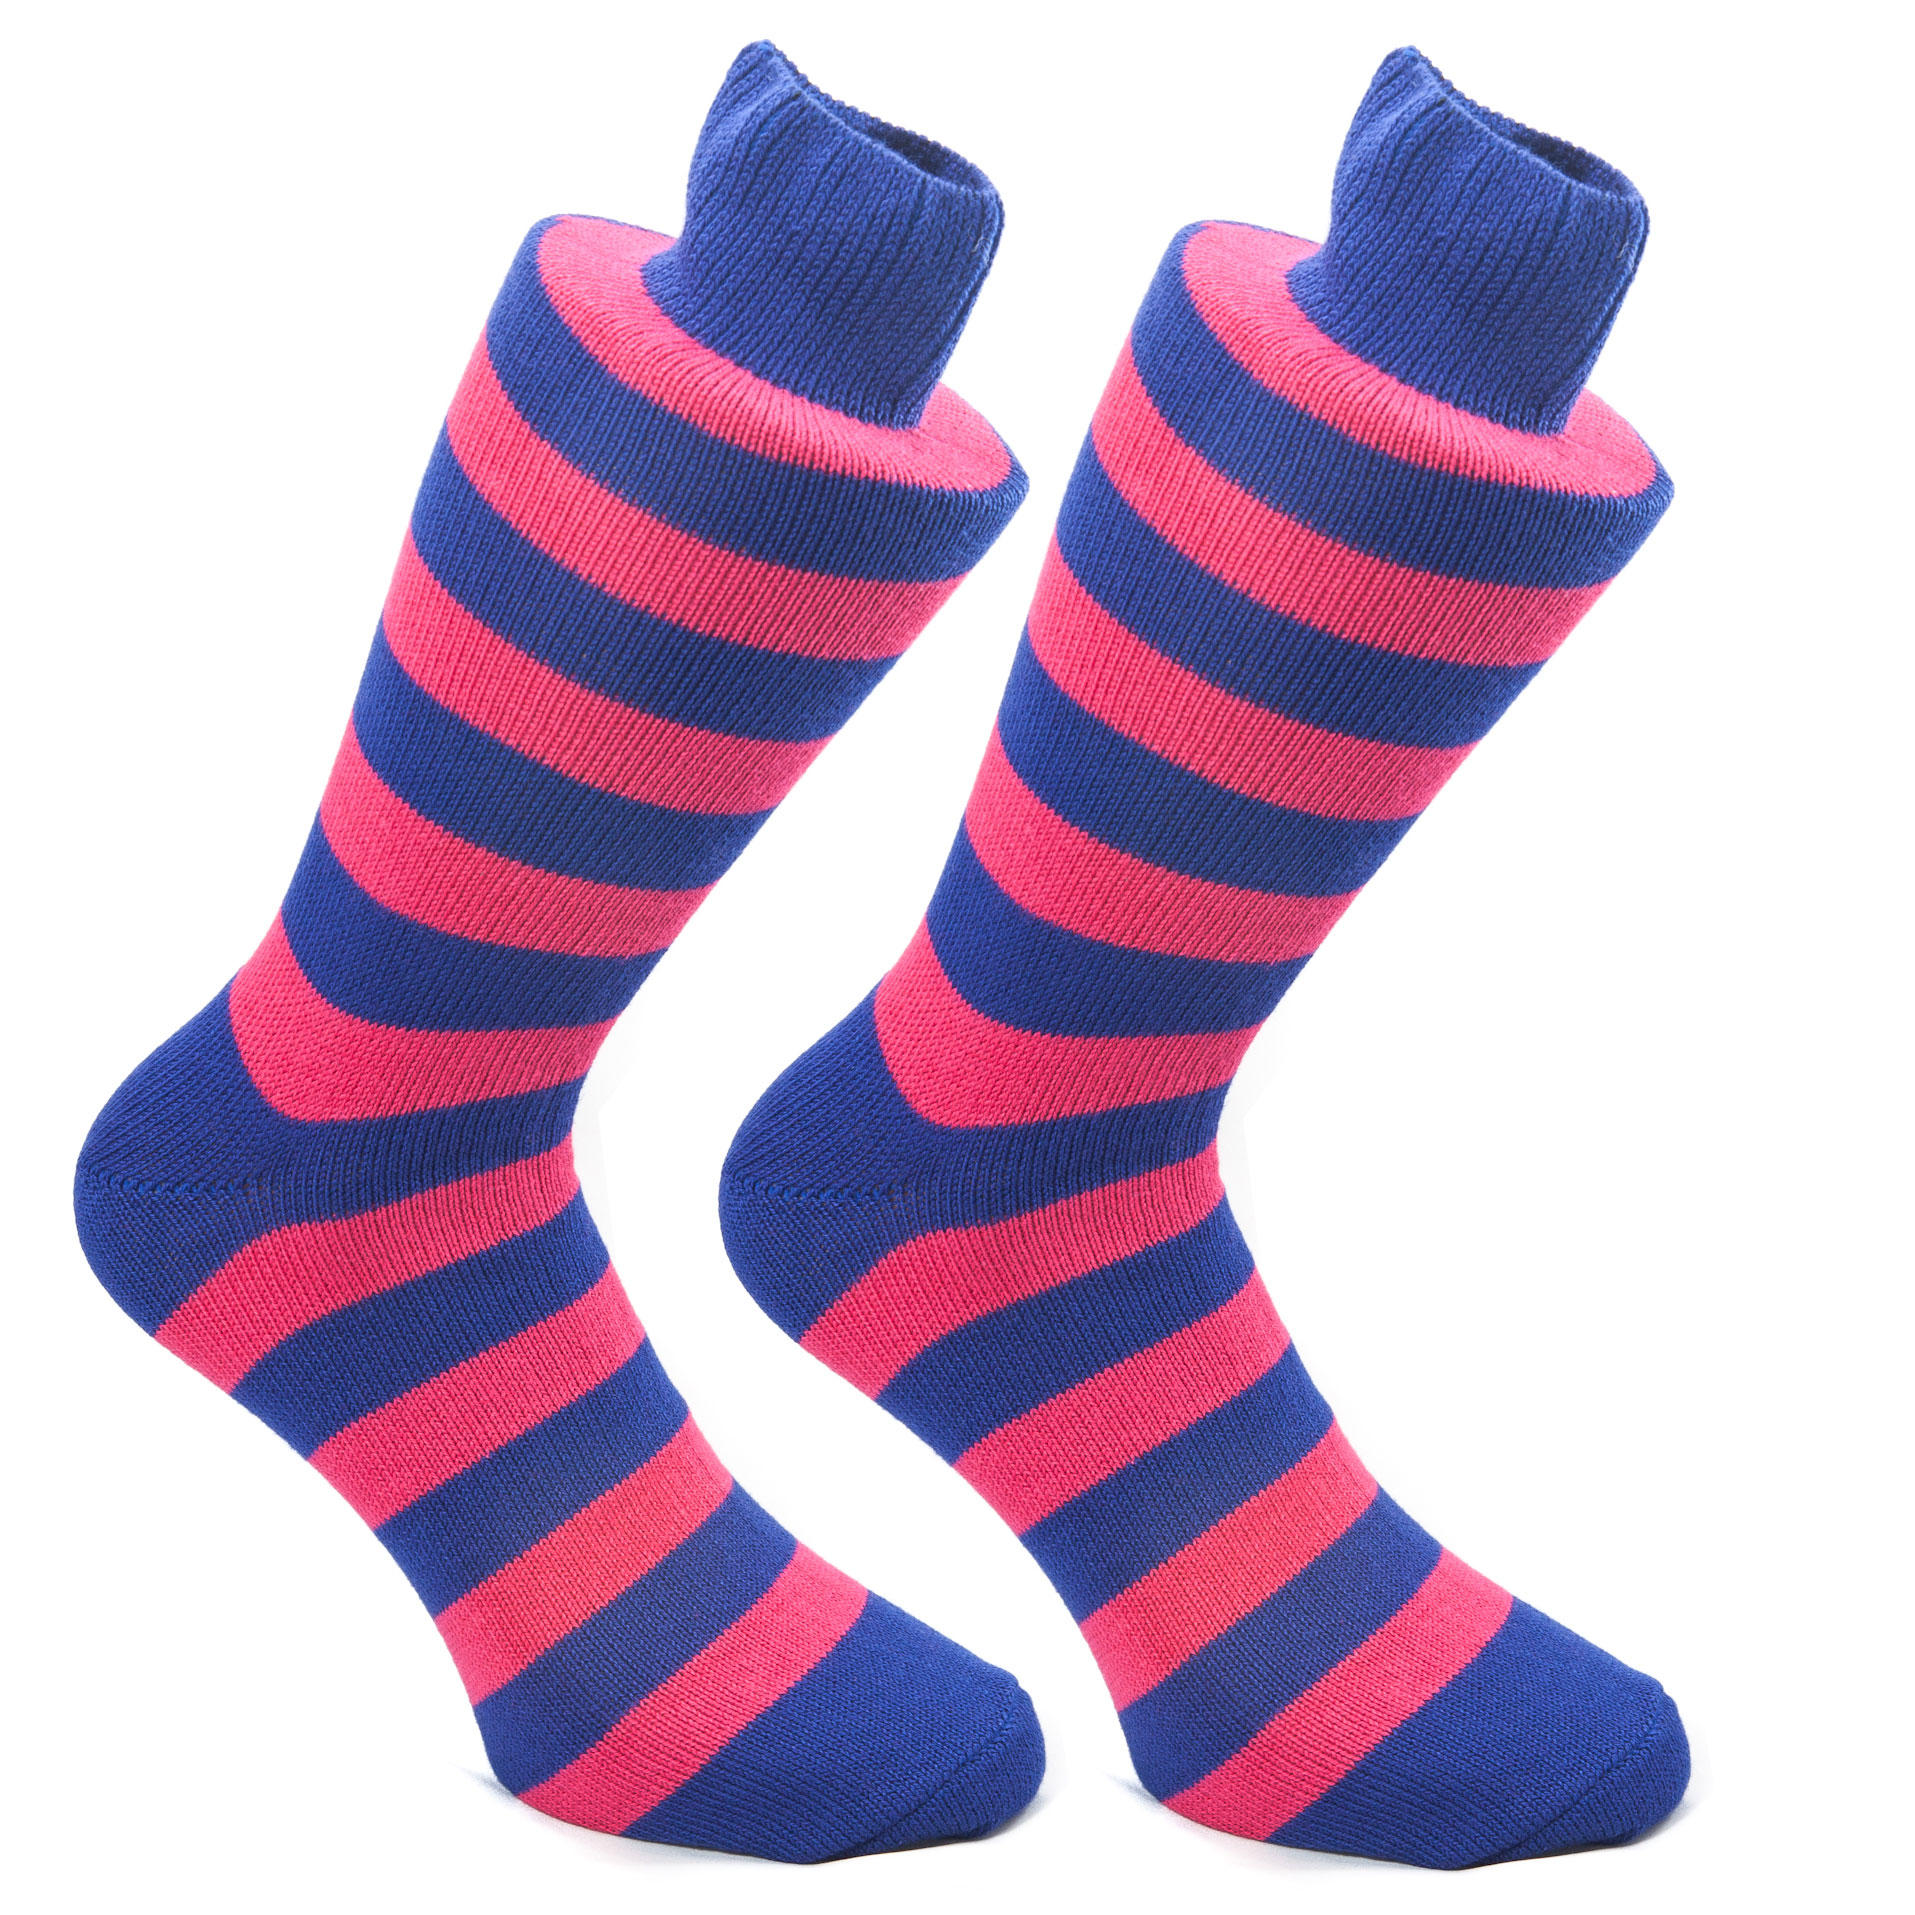 Raspberry & Navy Stripy Socks | SOCK CLUB® from Cuffs & Co